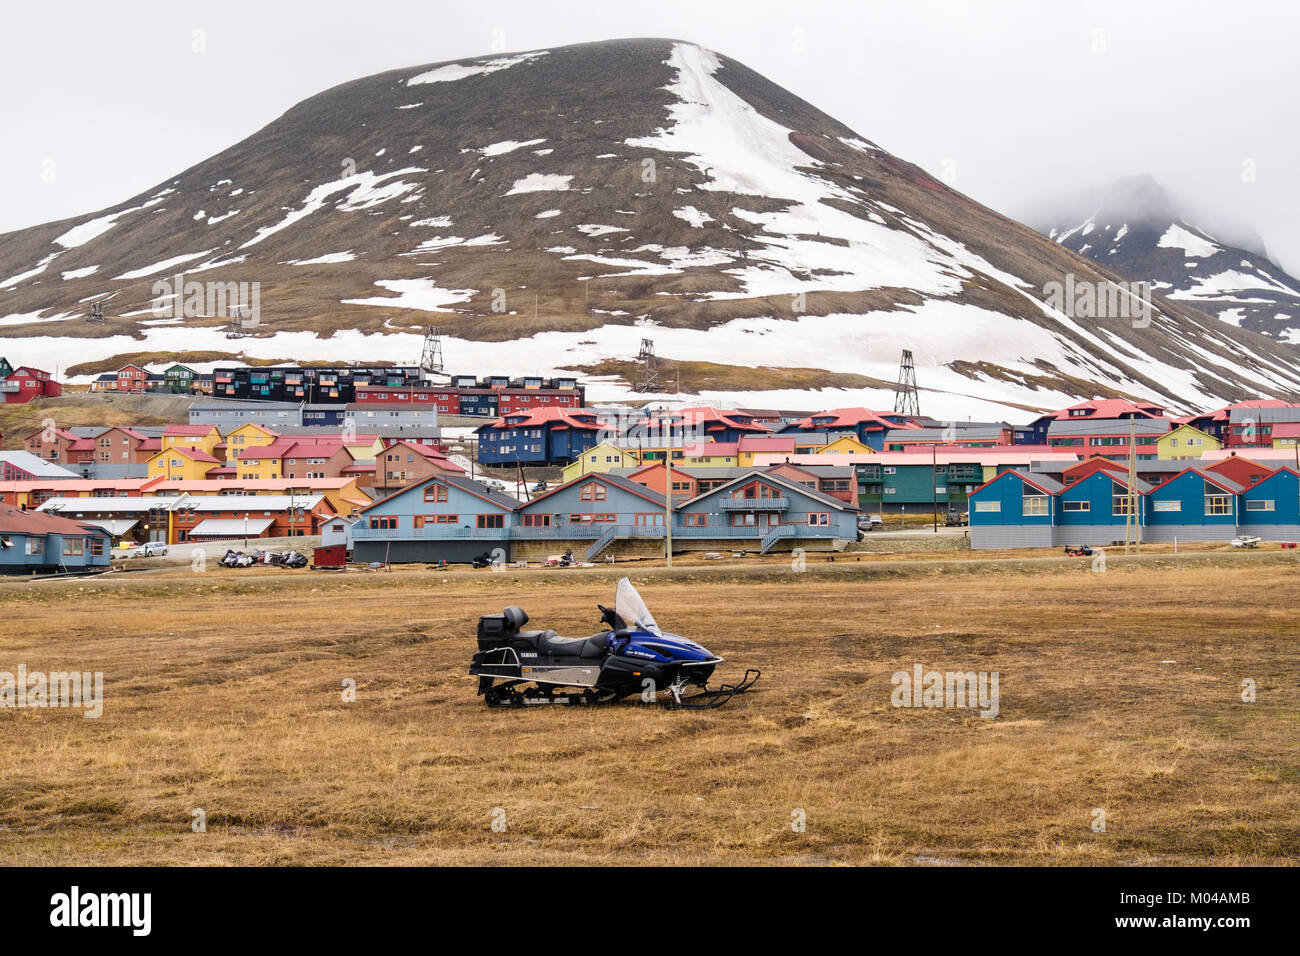 Colourful residential houses with snowmobile scooter parked on grass in old mining town of Longyearbyen, Spitsbergen - Stock Image